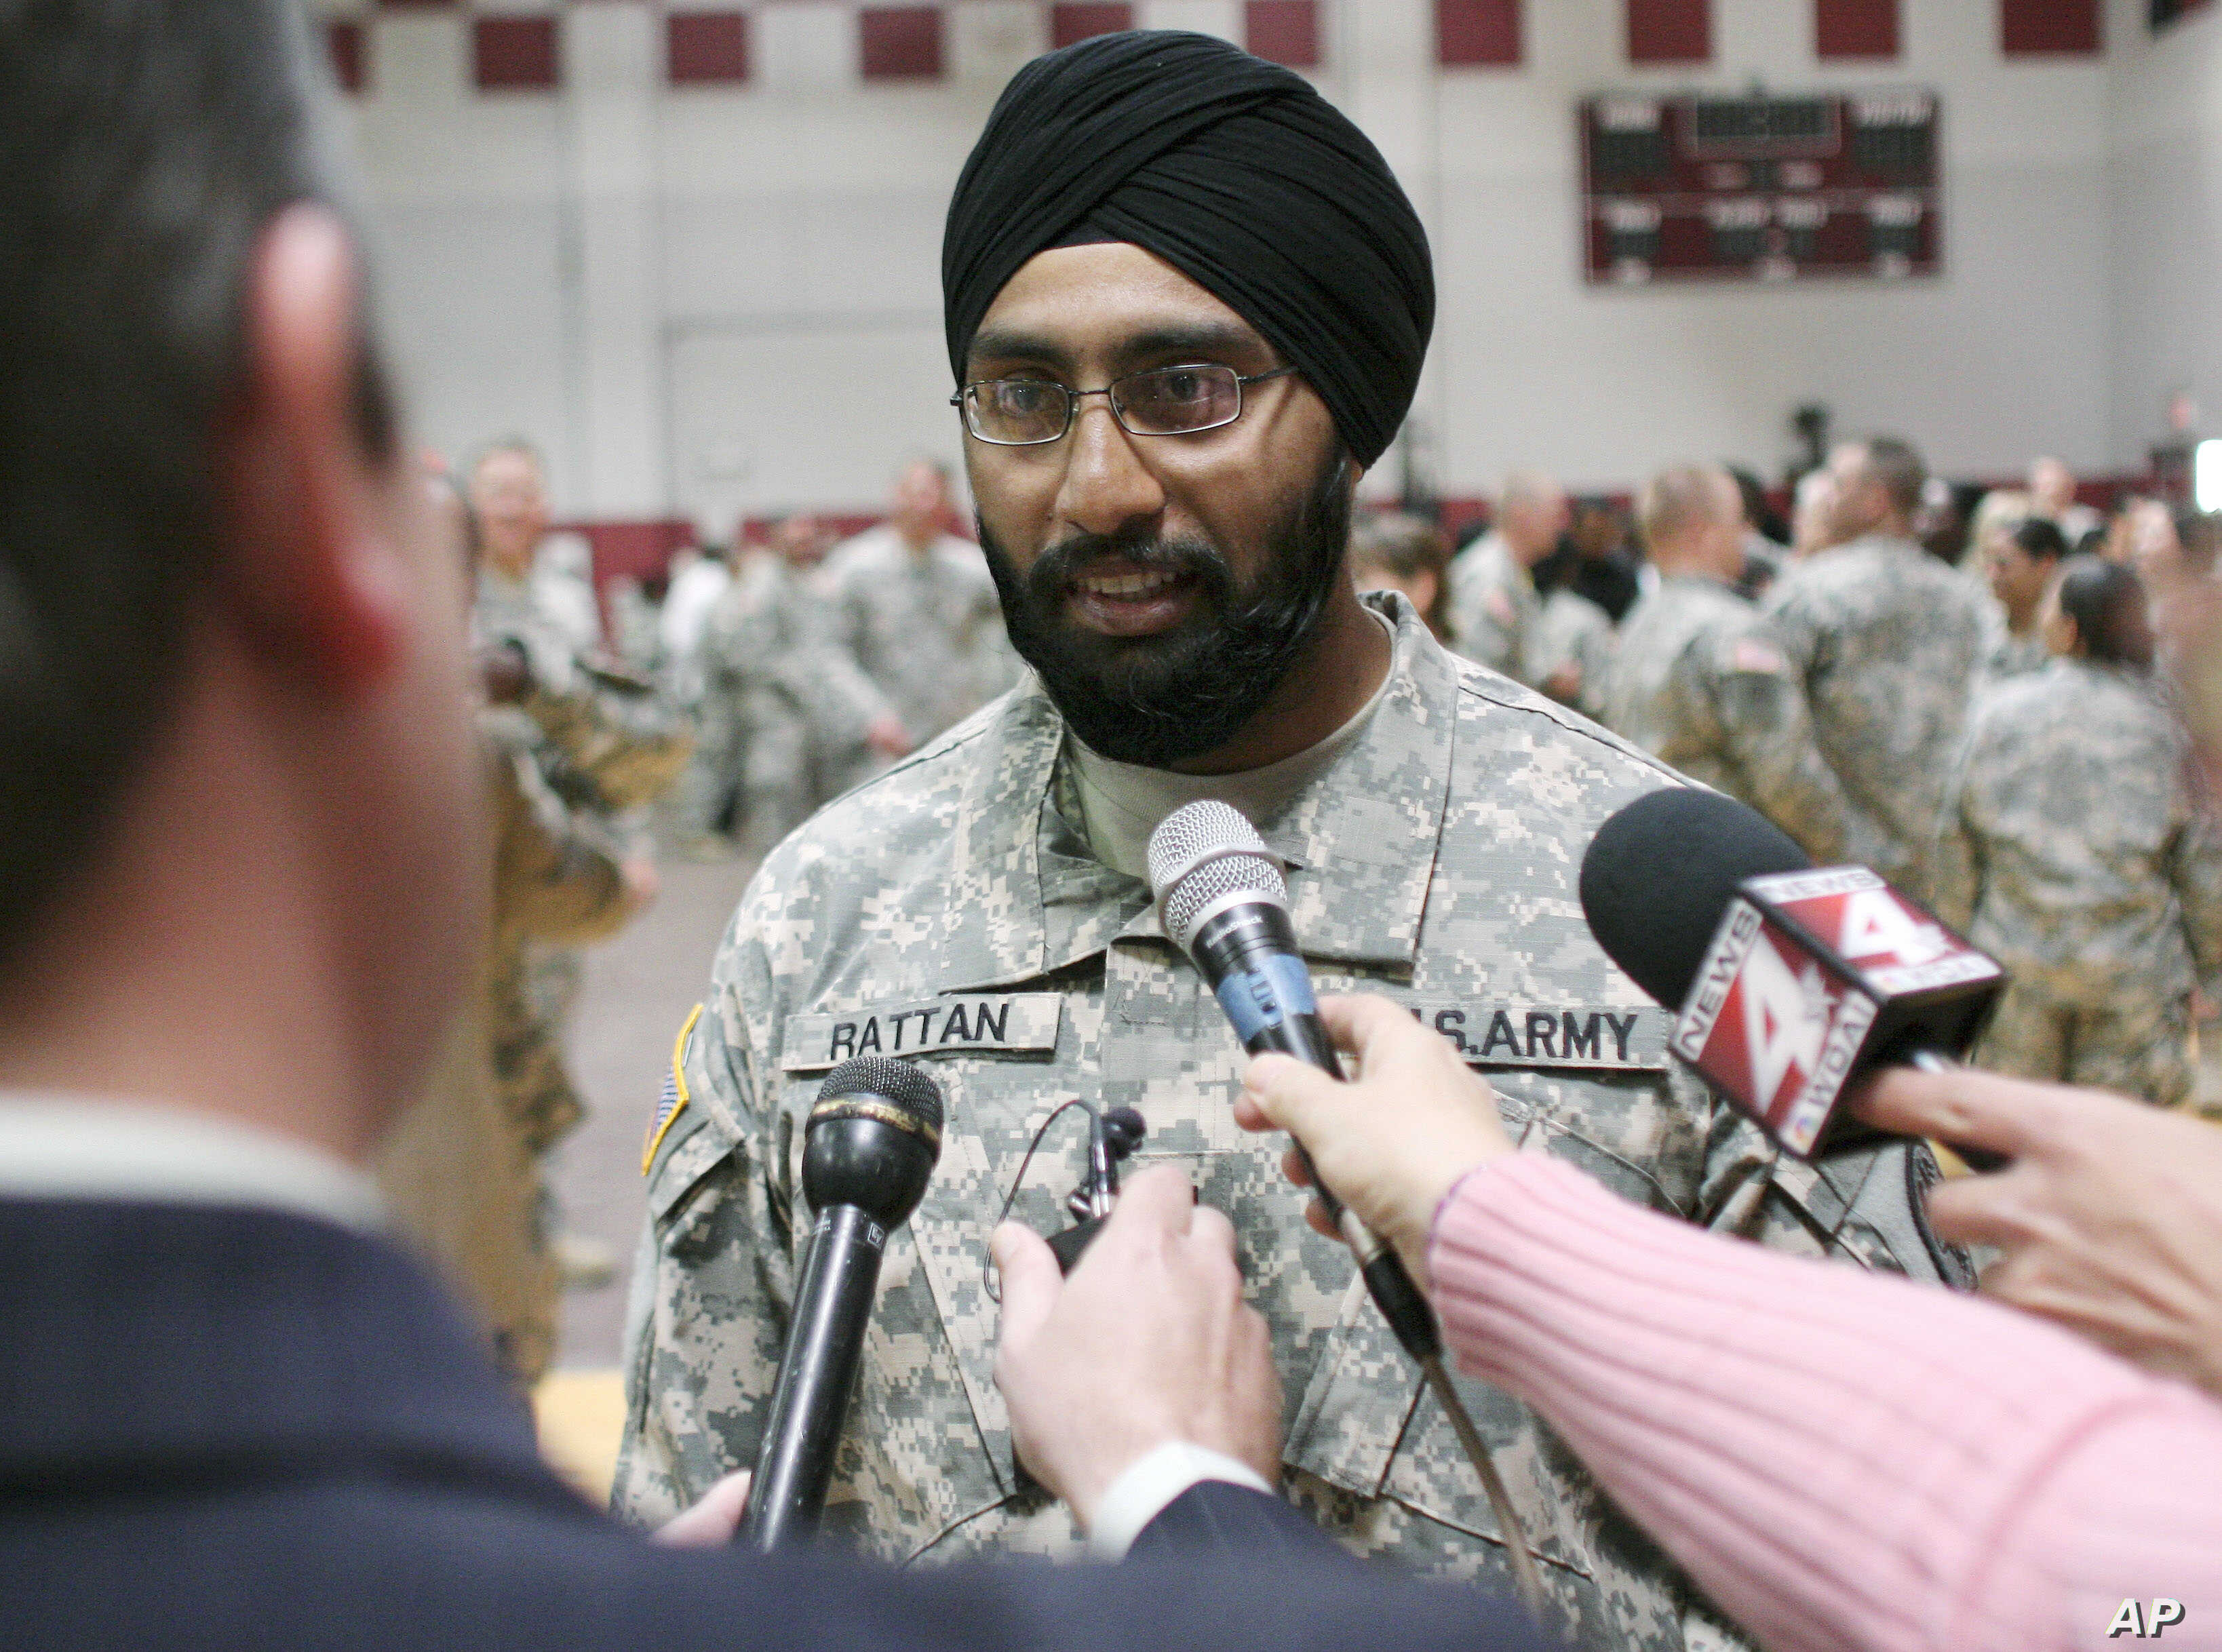 FILE - U.S. Army Capt. Tejdeep Singh Rattan speaks to journalists at a U.S. Army officer basic training graduation ceremony at Fort Sam Houston in San Antonio, March 22, 2010. Rattan was the first Sikh allowed to complete officer basic training while...